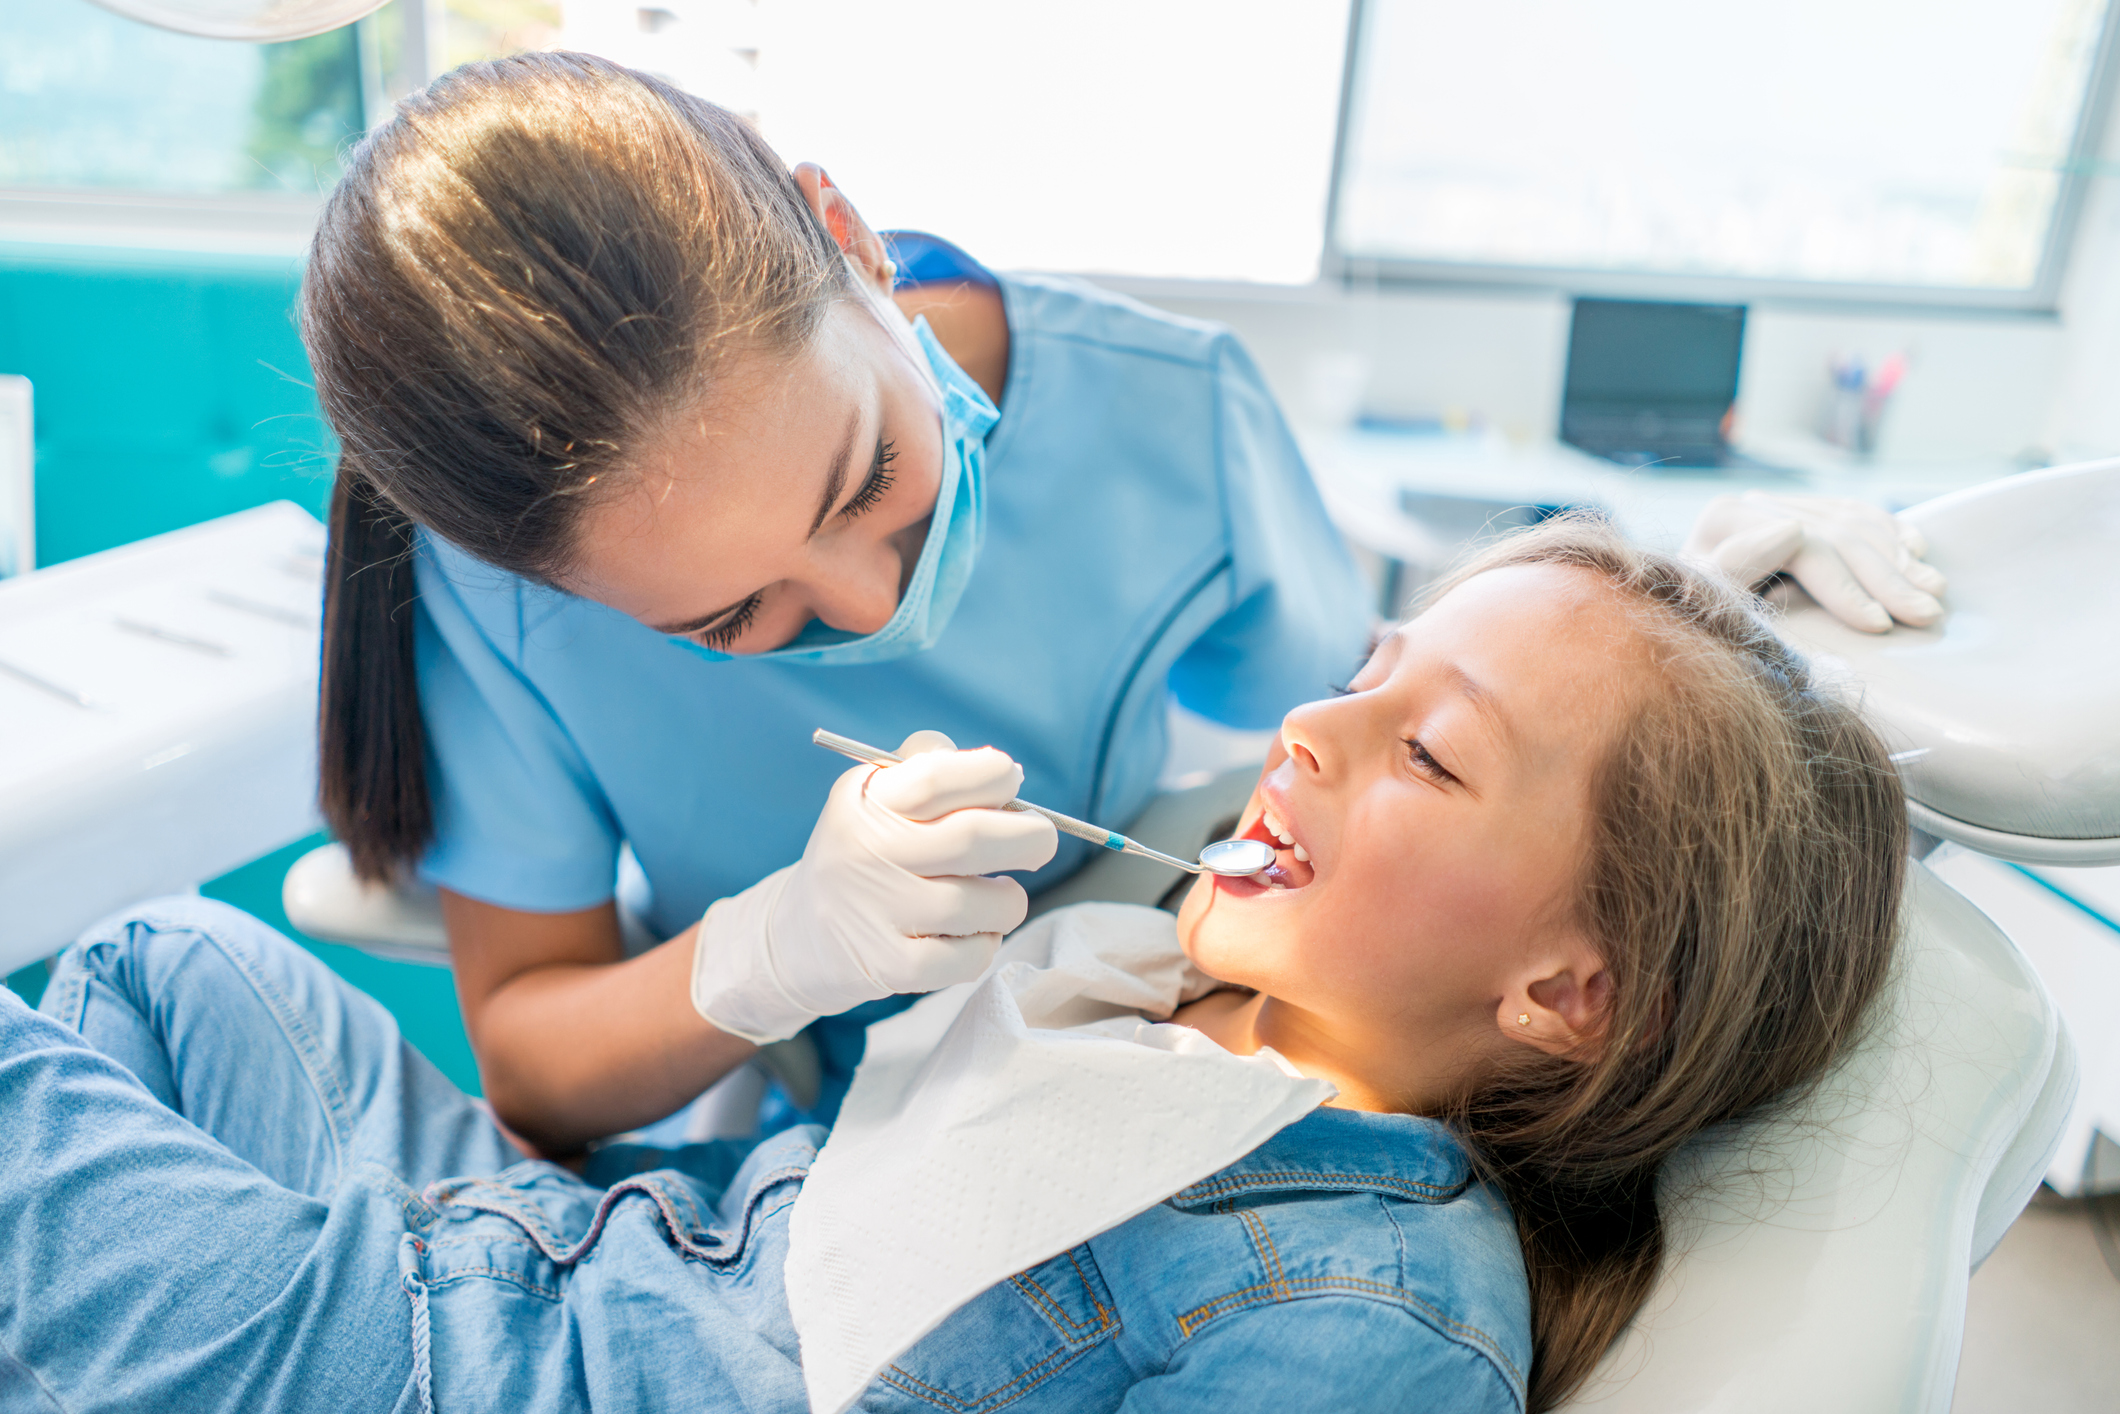 Female dentist wearing a mask and examining a pediatric female patient.